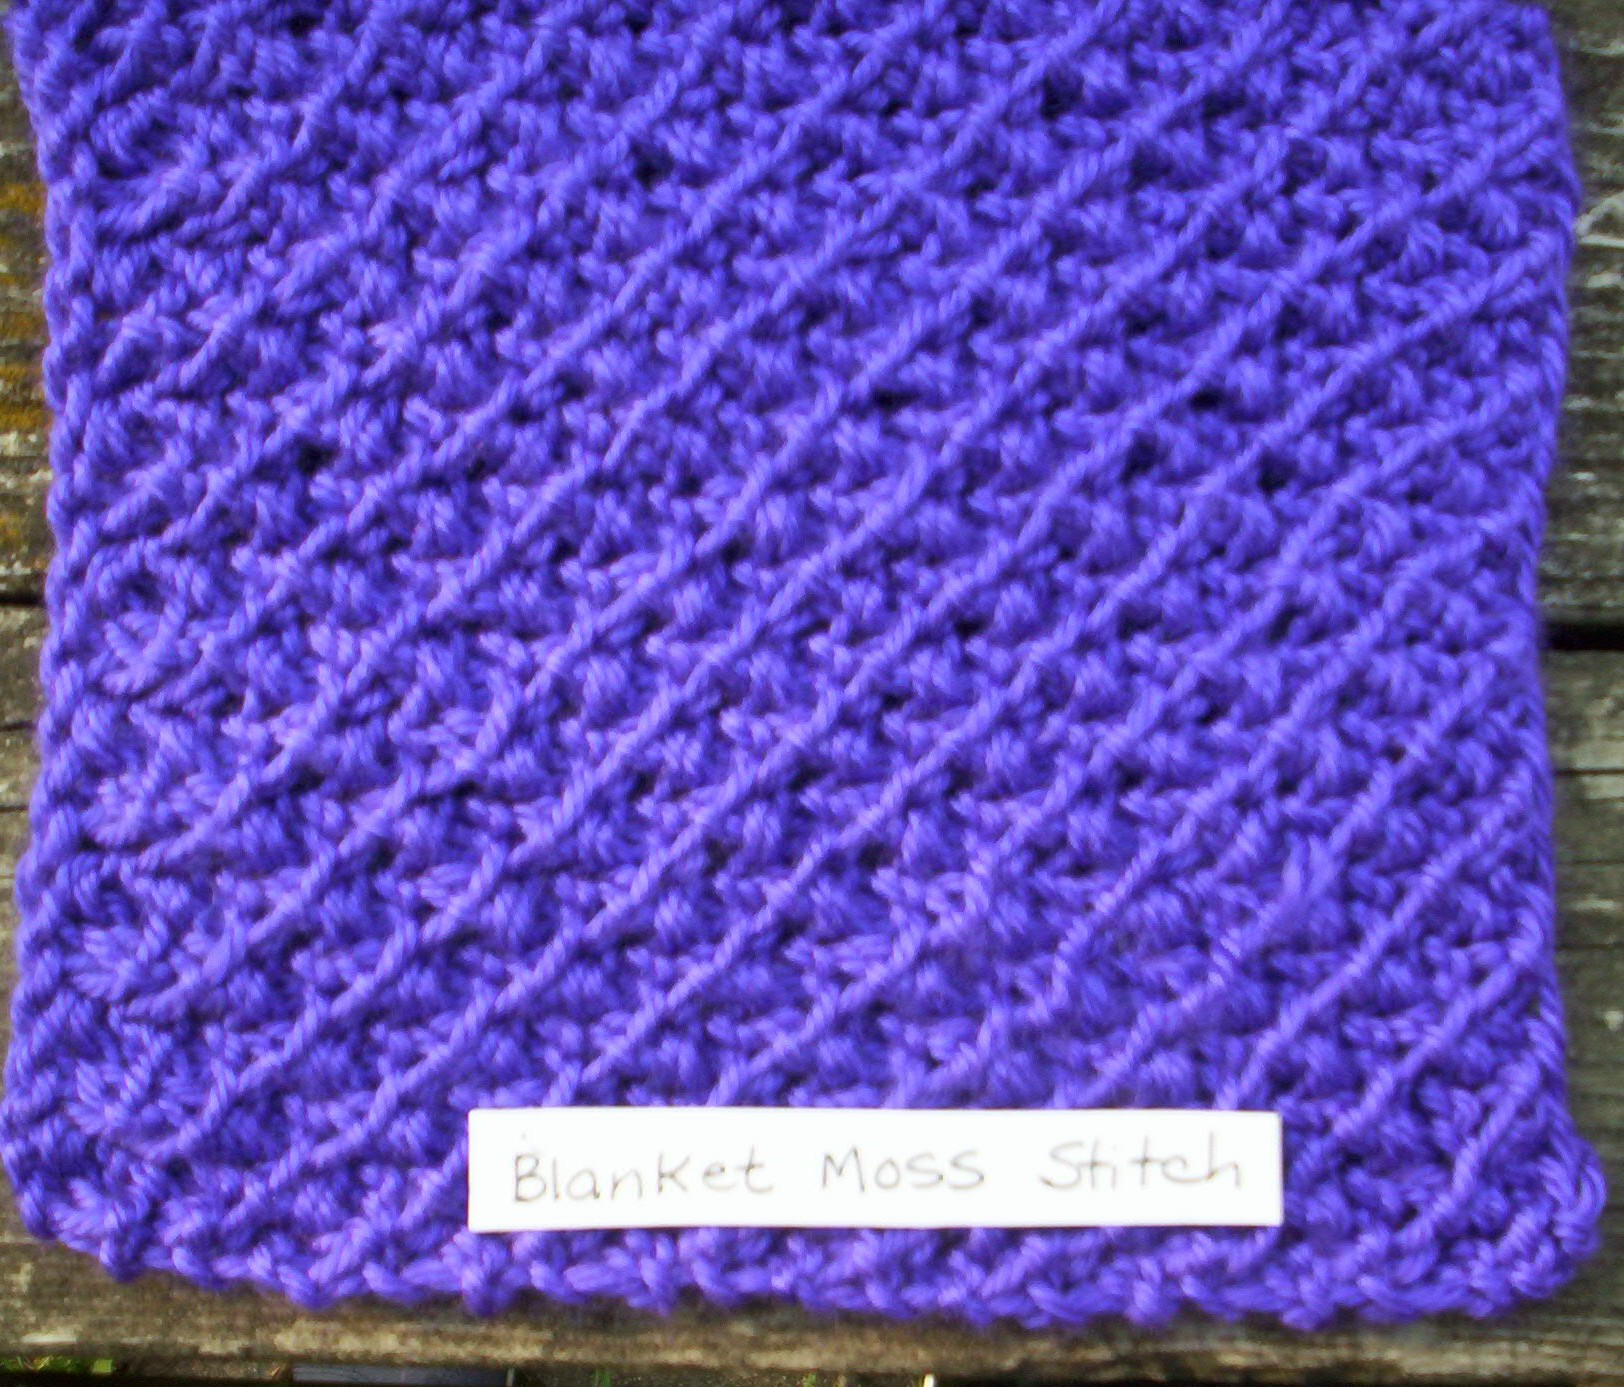 Knitting Stitch In Needlepoint : Patterns-Knit Squares The Ghana Project/Key of Hope